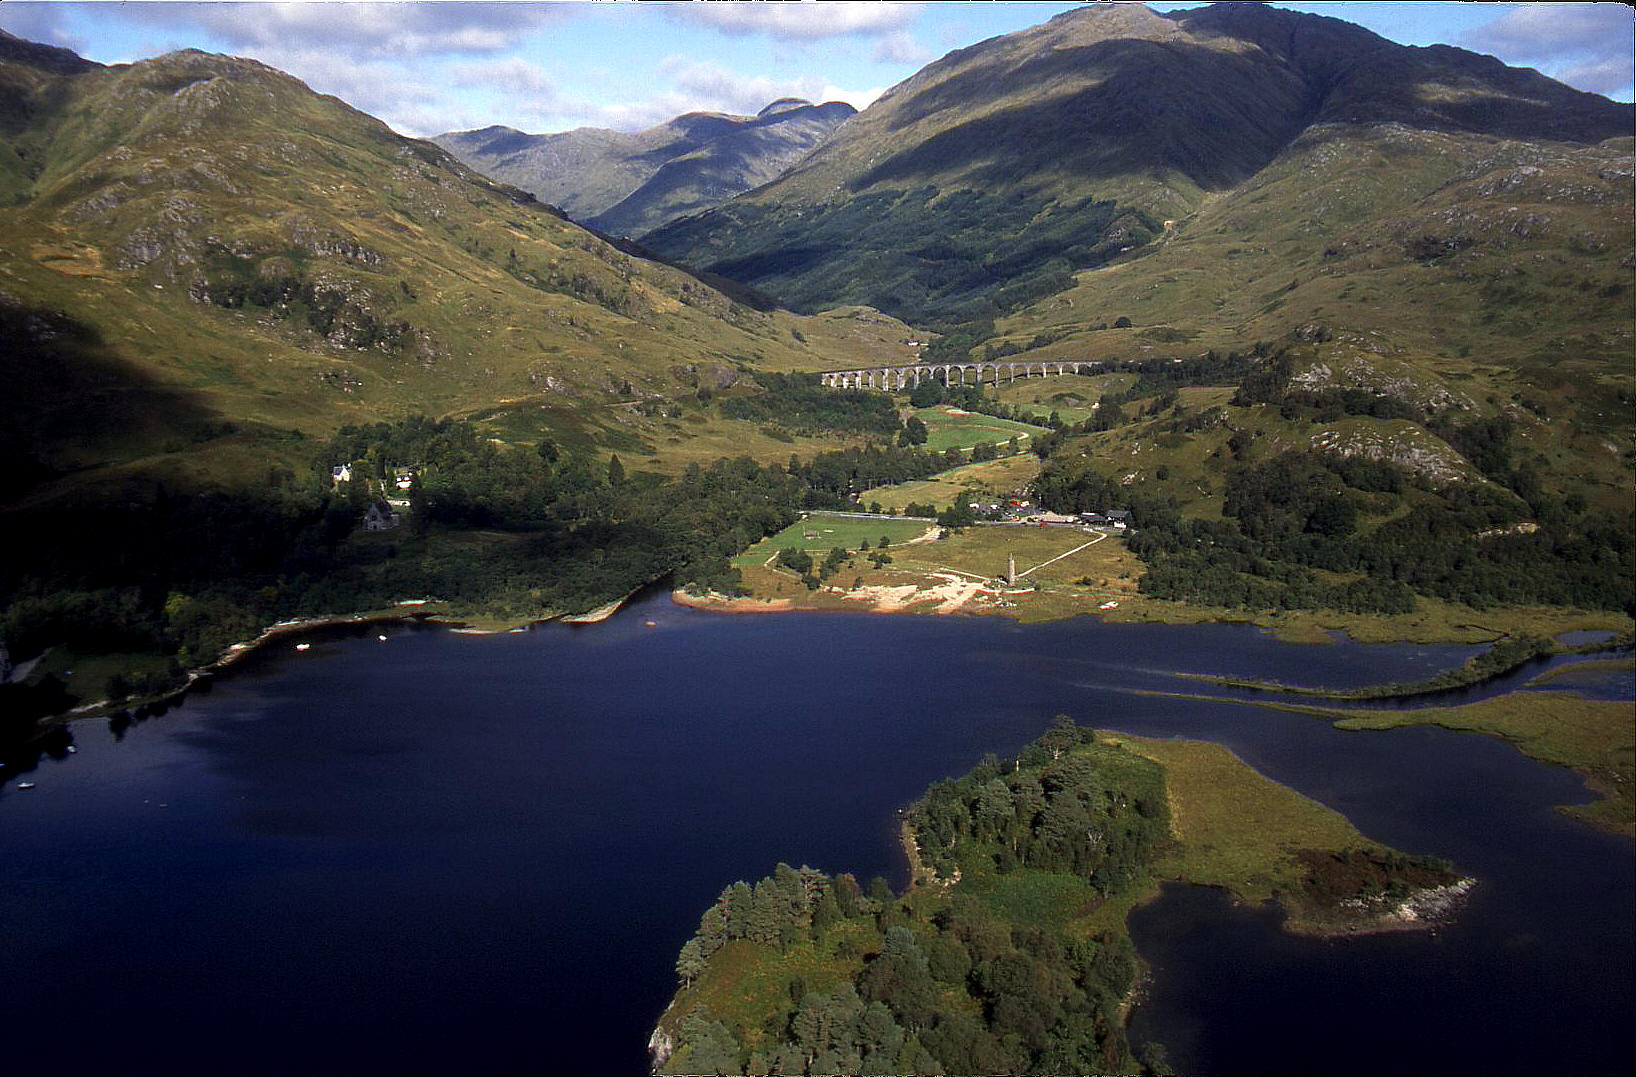 Loch Shiel, Glenfinnan beyond, September 2002